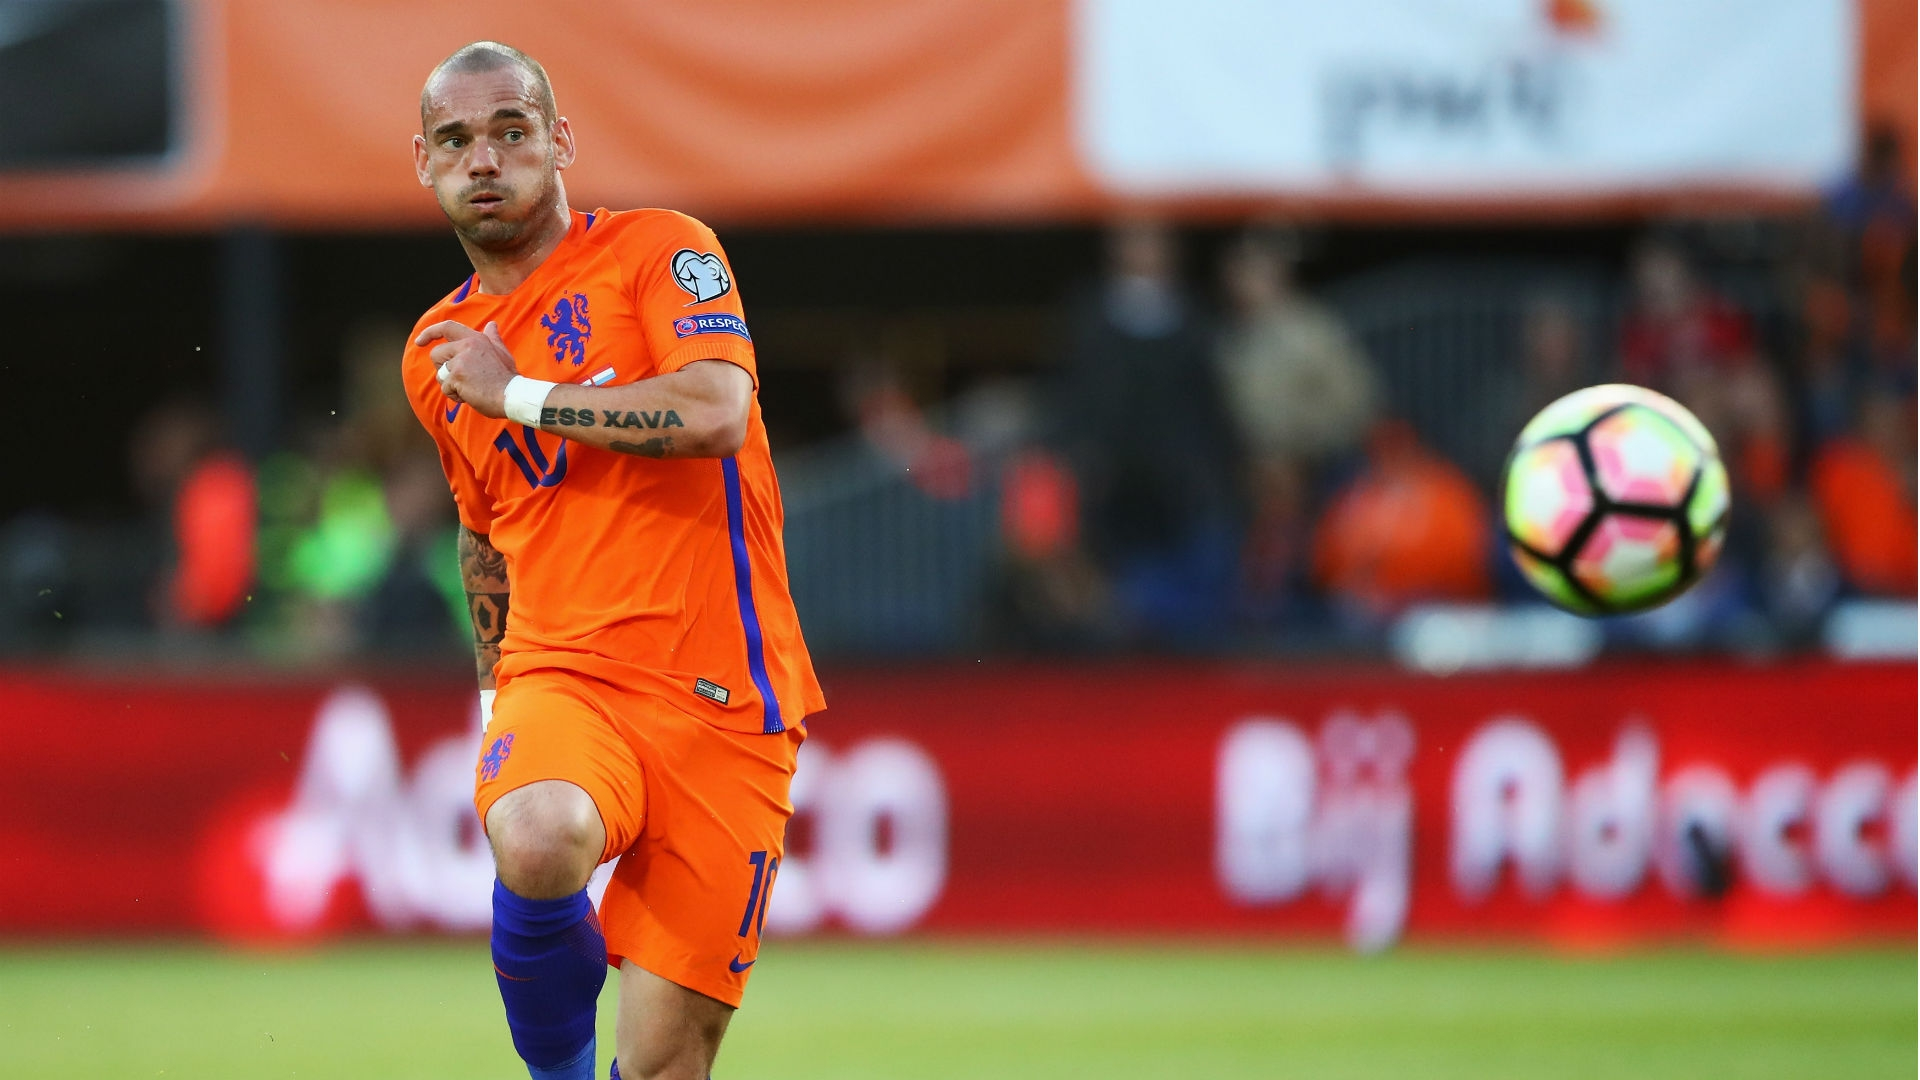 Sneijder set to sign for Nice following Galatasaray split